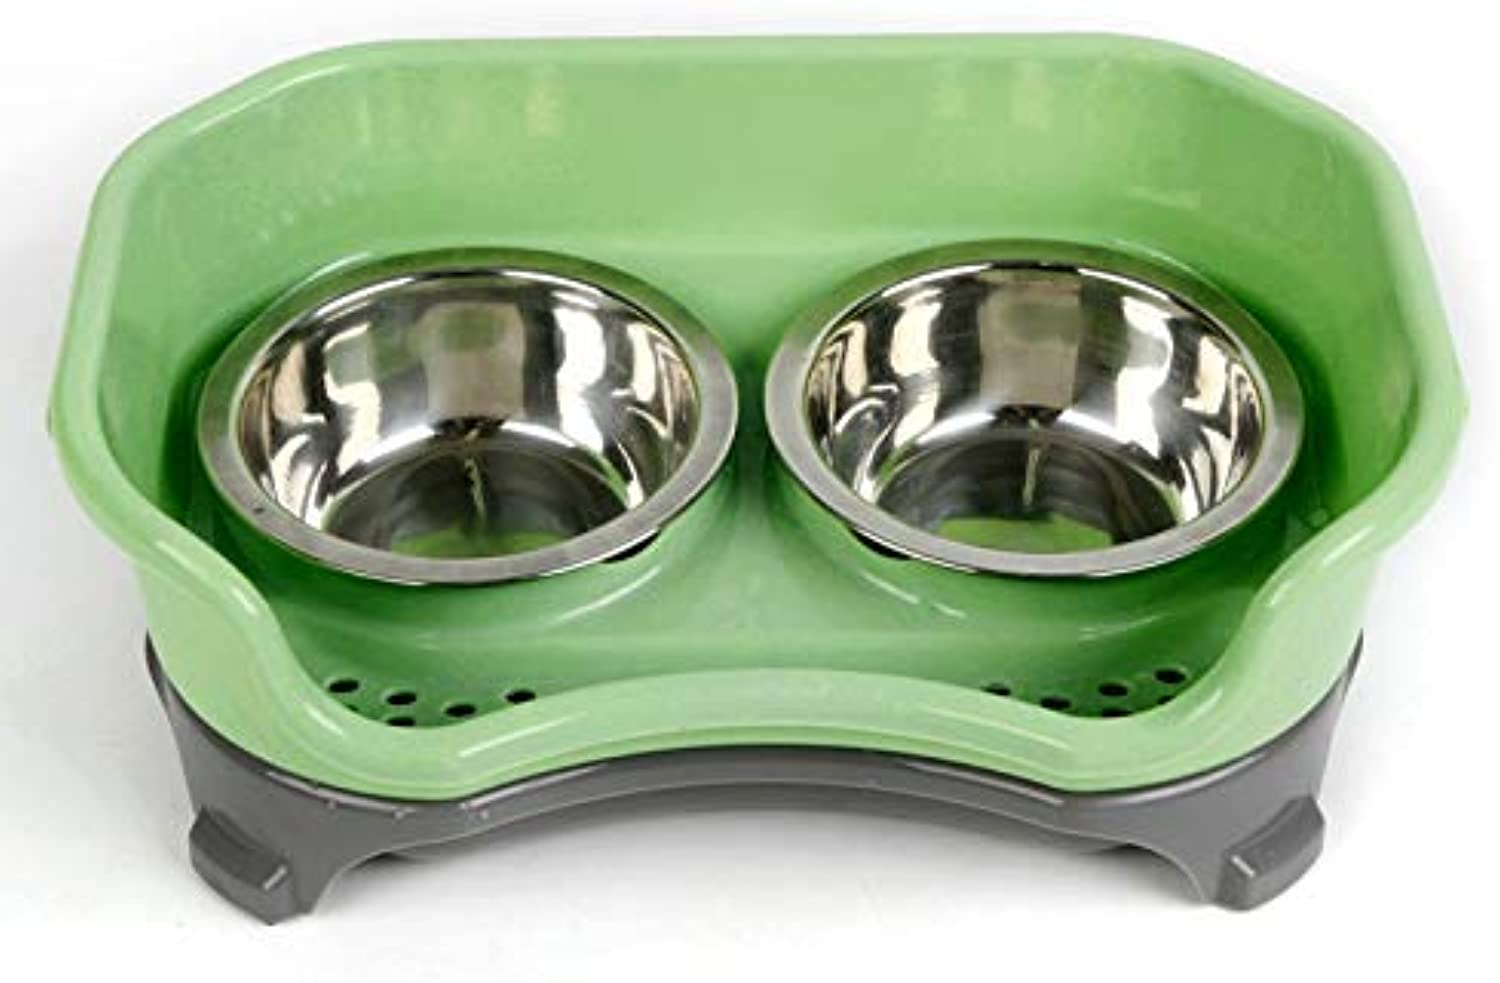 32.5X22x12cm Pet Stainless Steel AntiDrop Double Bowl Higher Splash Proof Baffle AntiSliding Dog Dishes for Pet Dog Cat Feed,Green